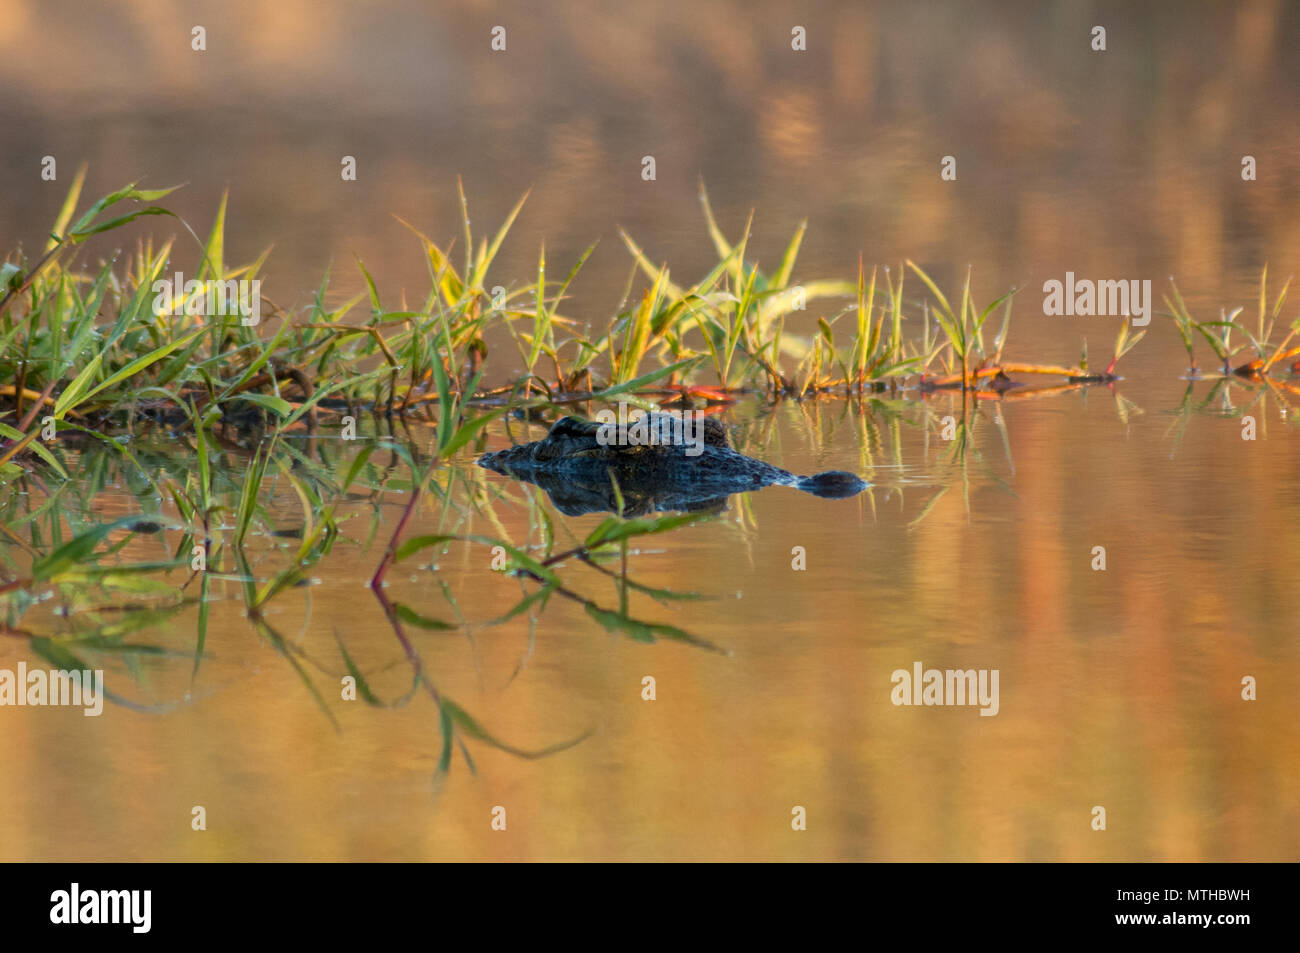 A Crocodile stays cool in a river with its eyes barely visible above the waterline - Stock Photo